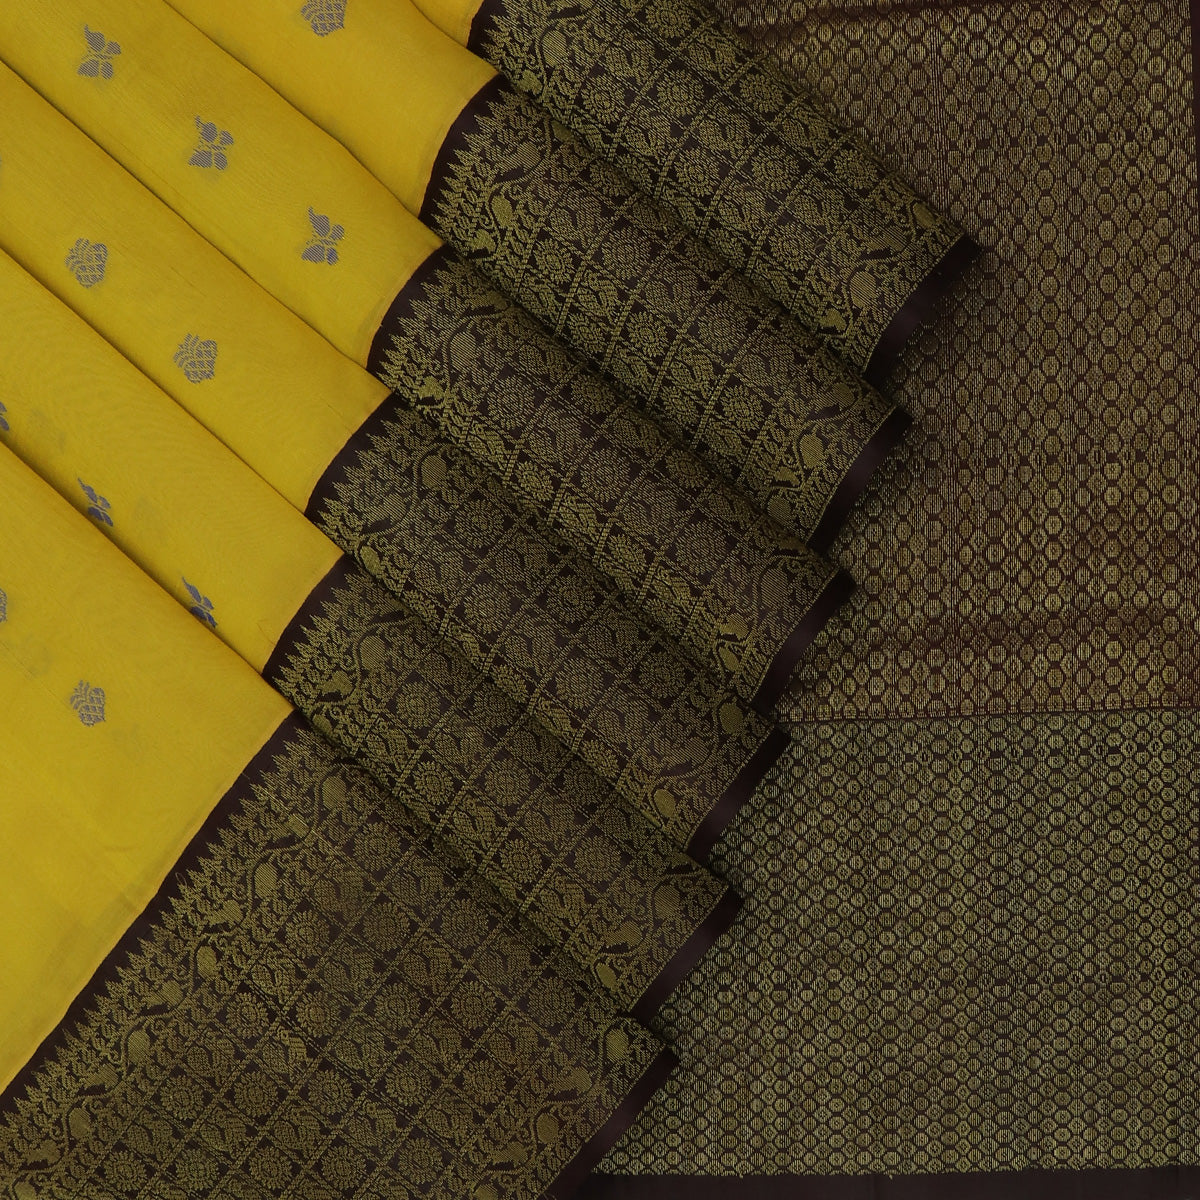 Kuppadam Silk Cotton Saree-Yellow with buttas and Brown with Annam silk Zari border